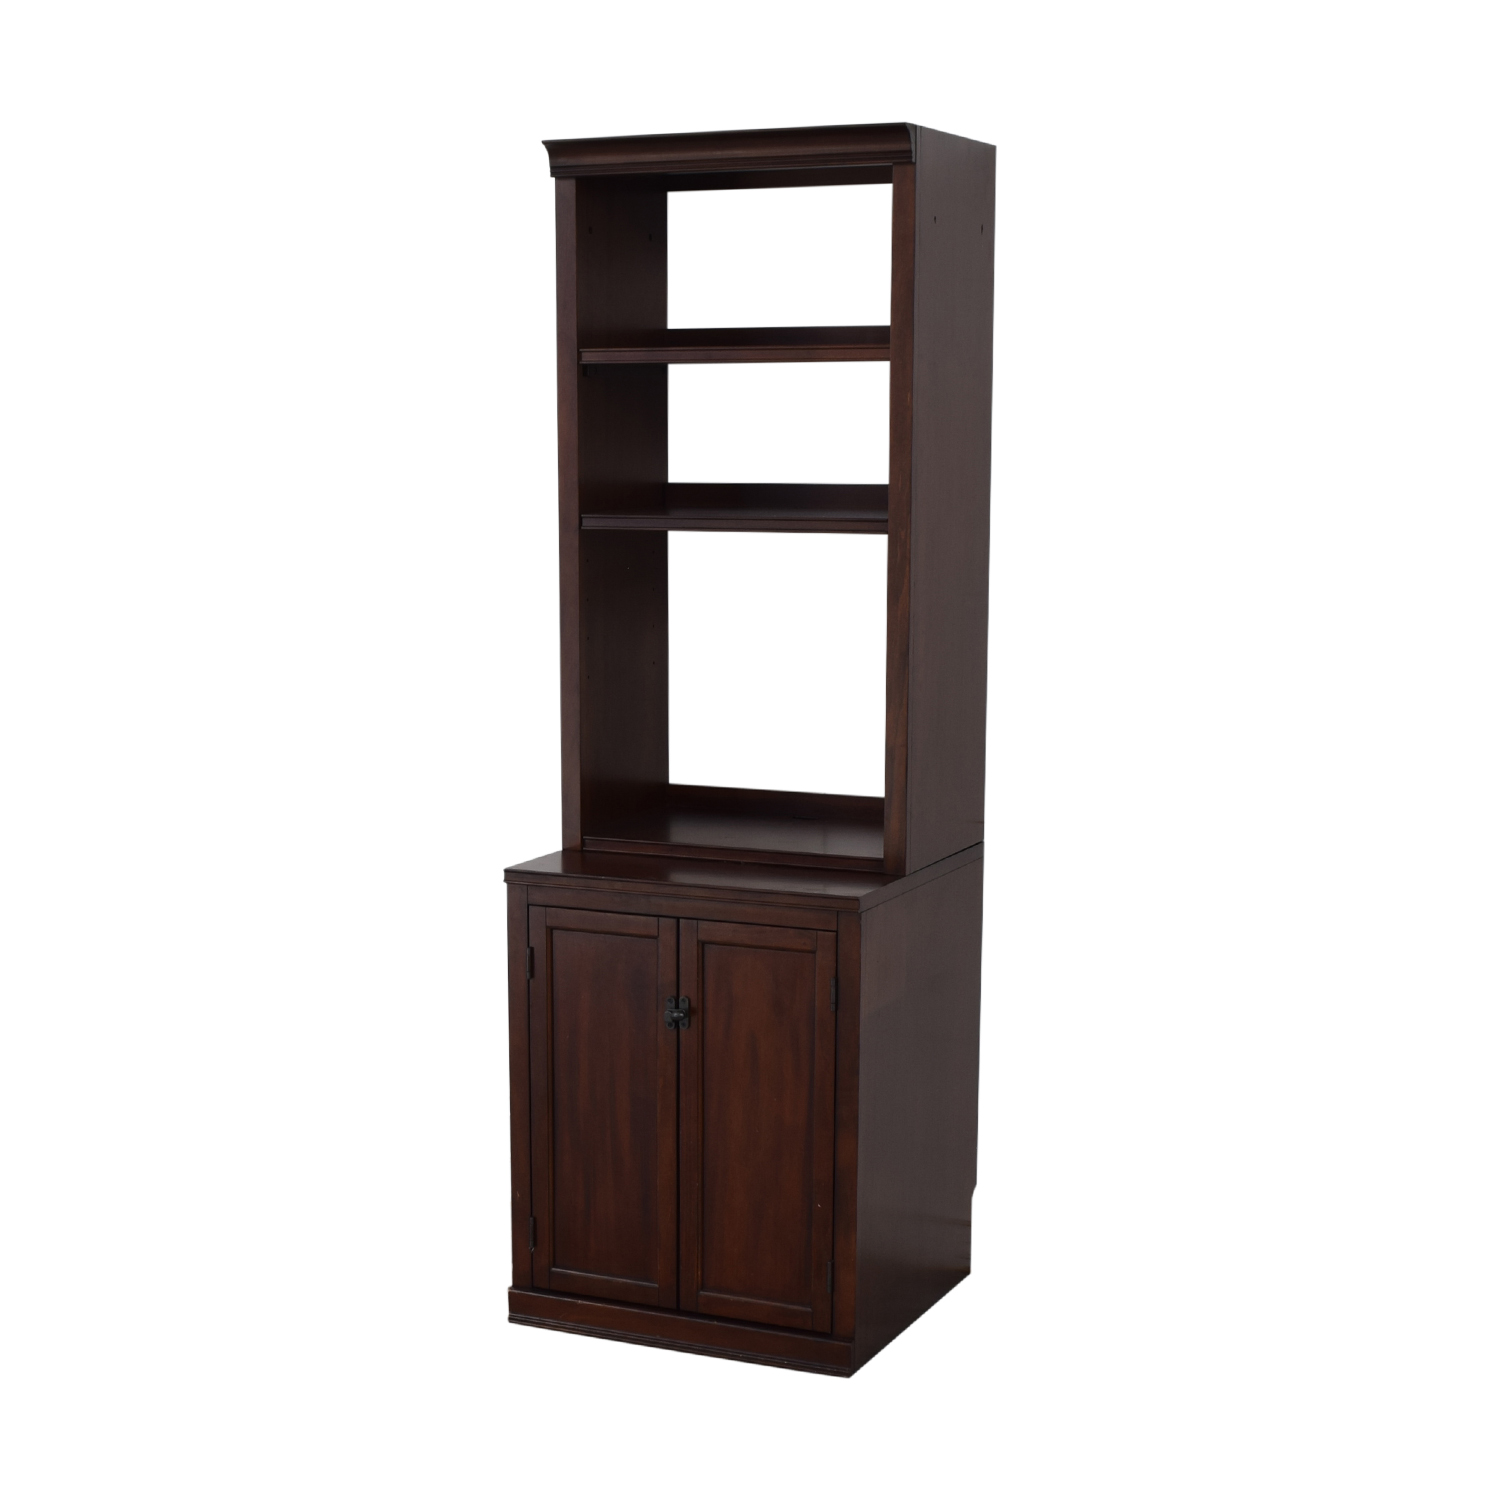 Pottery Barn Pottery Barn Bookcases with Storage Cabinet for sale